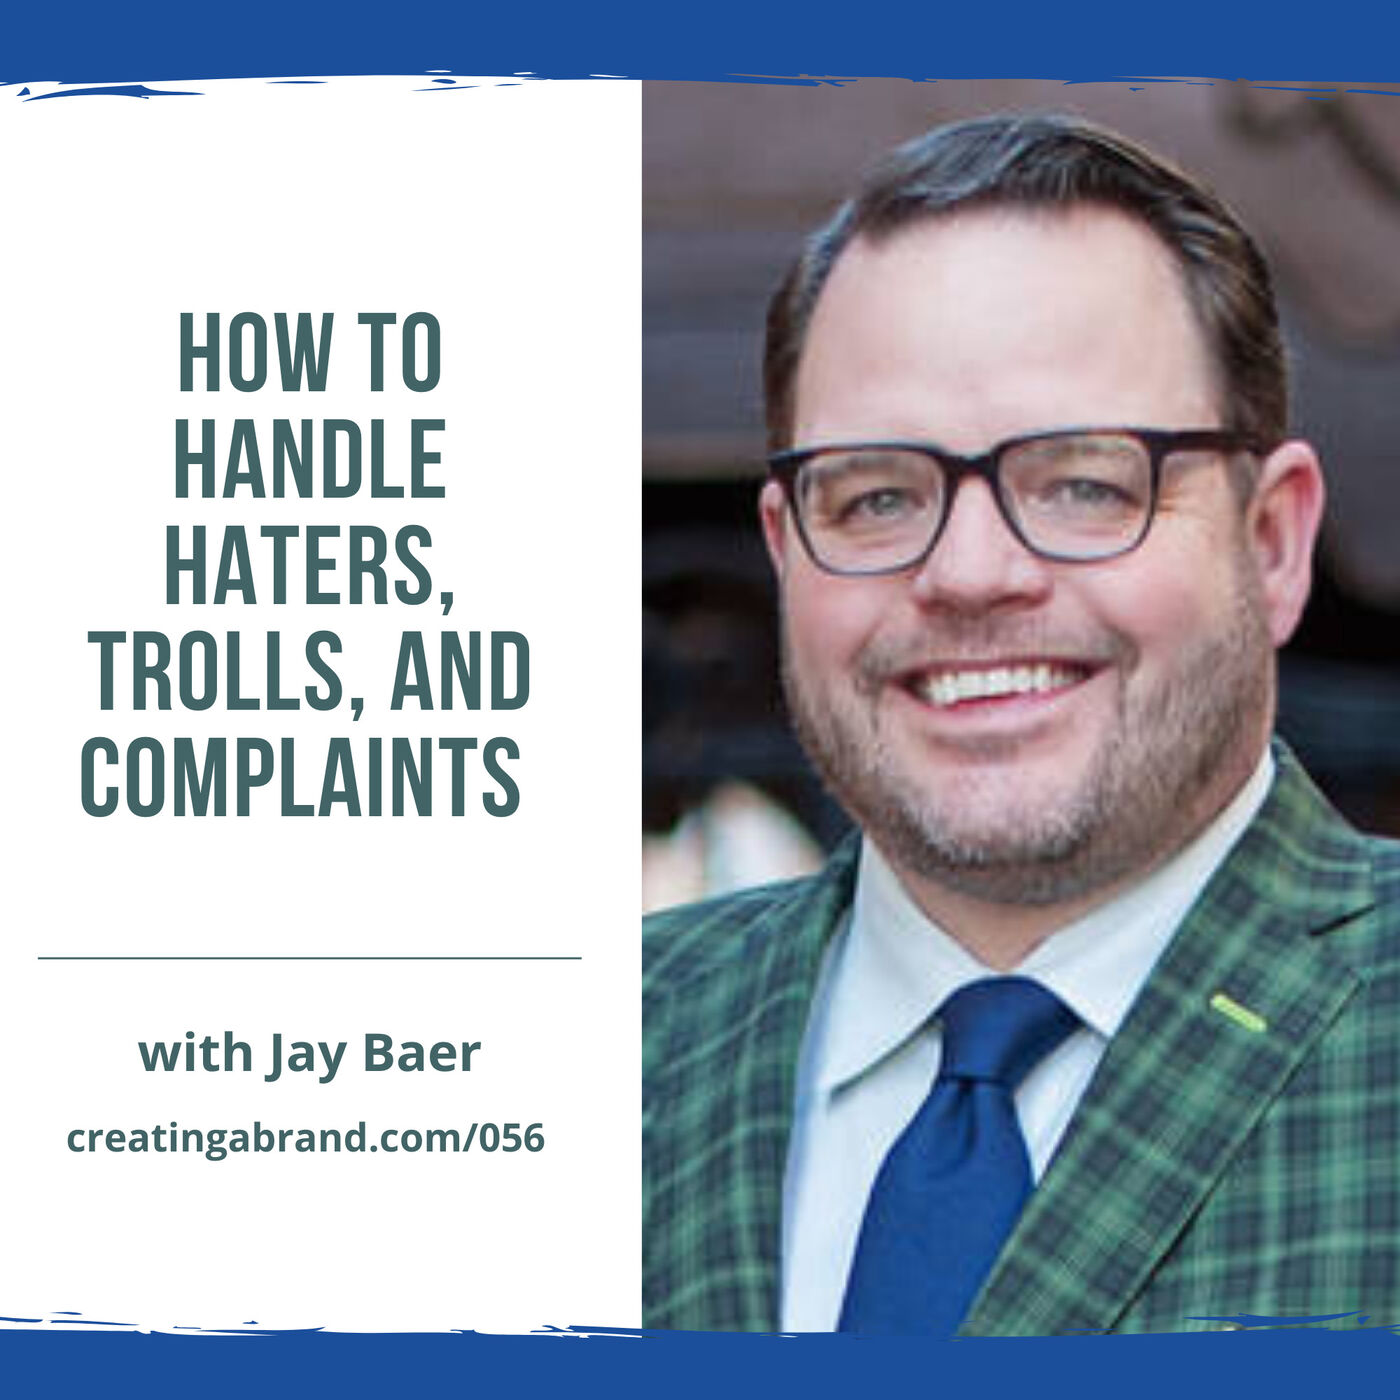 How to Handle Haters, Trolls, and Complaints with Jay Baer